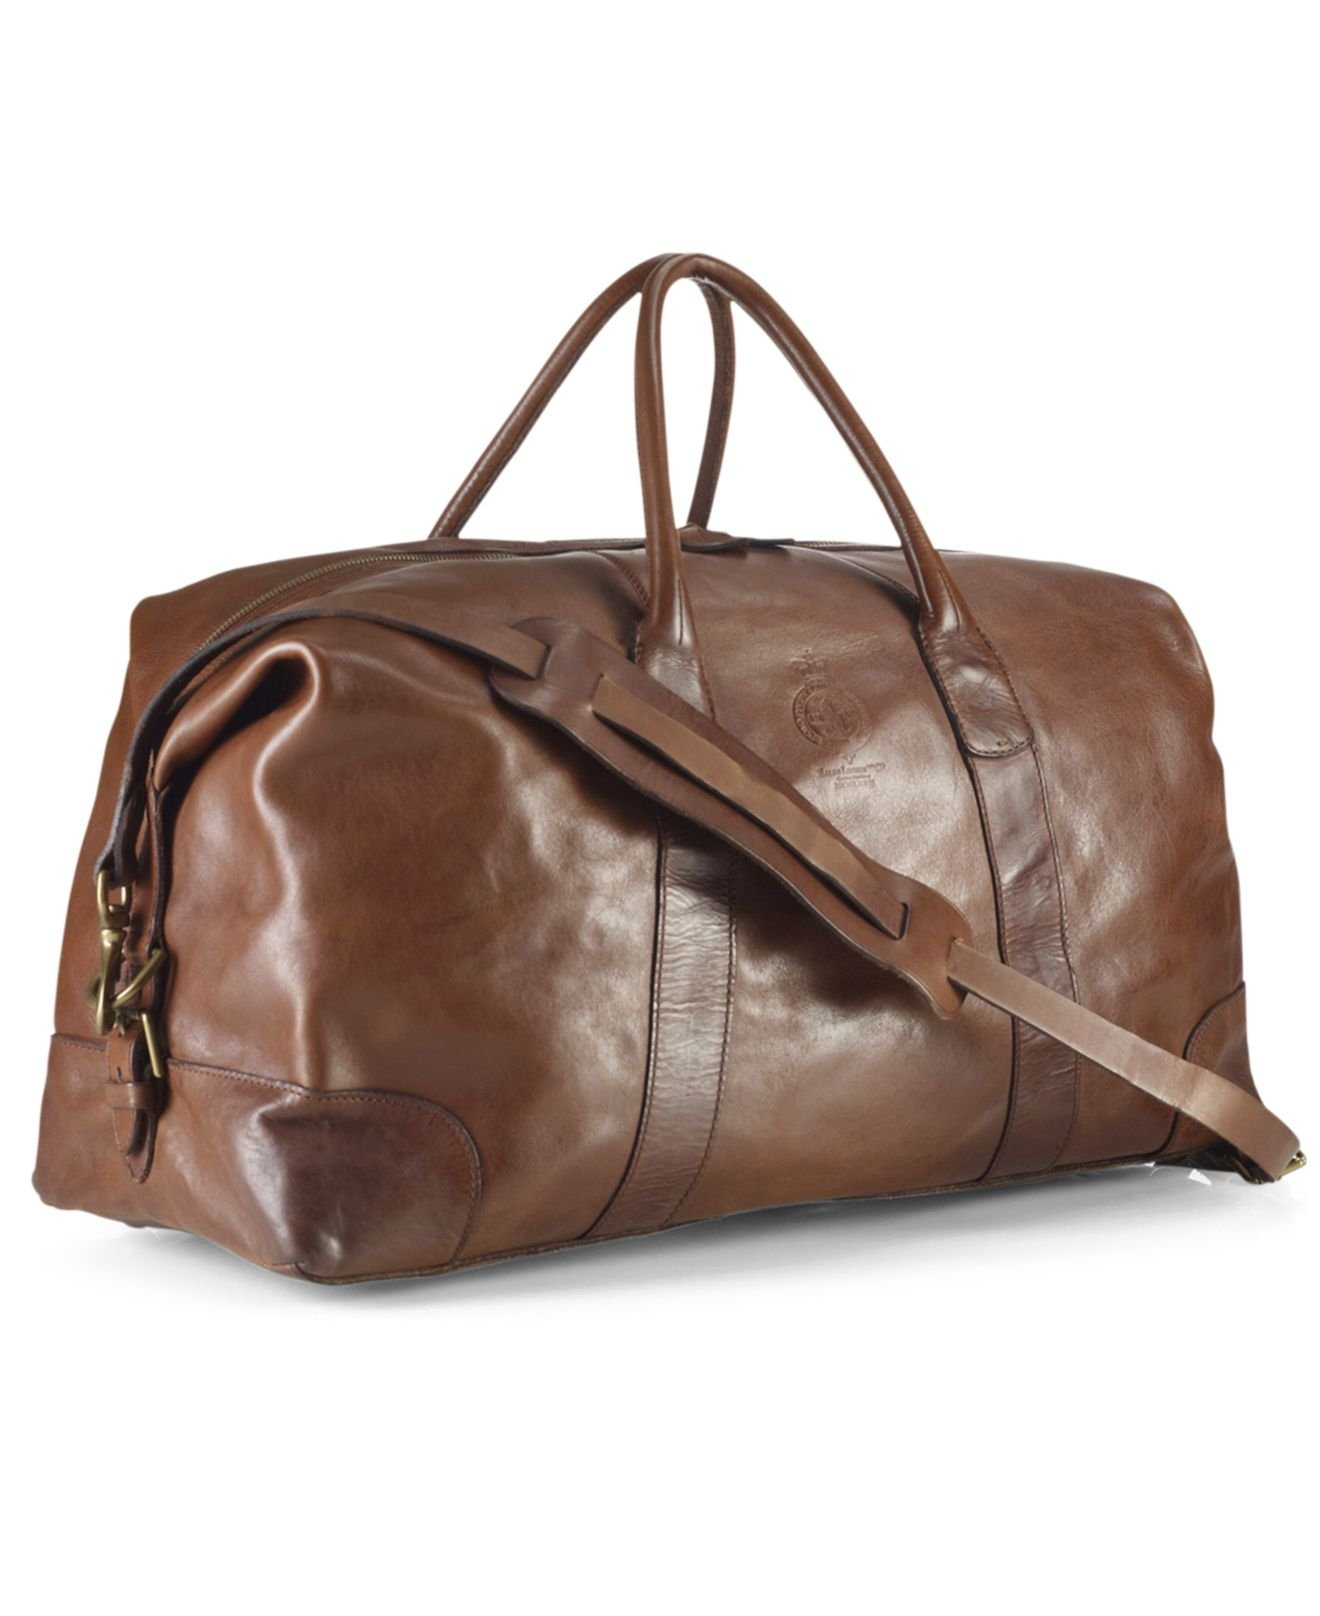 ... clearance lyst polo ralph lauren core leather duffle bag in brown for  men b866e ef95e ... 57193e1751